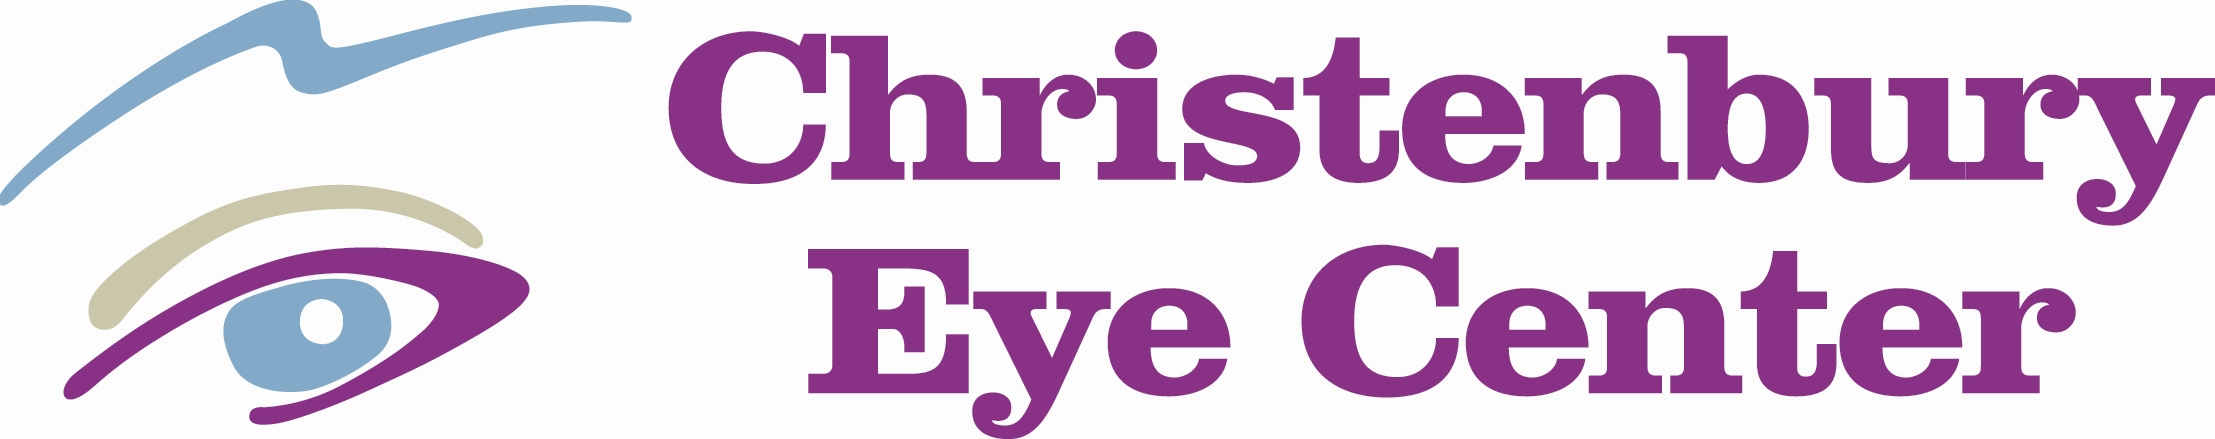 Christenbury Eye Center